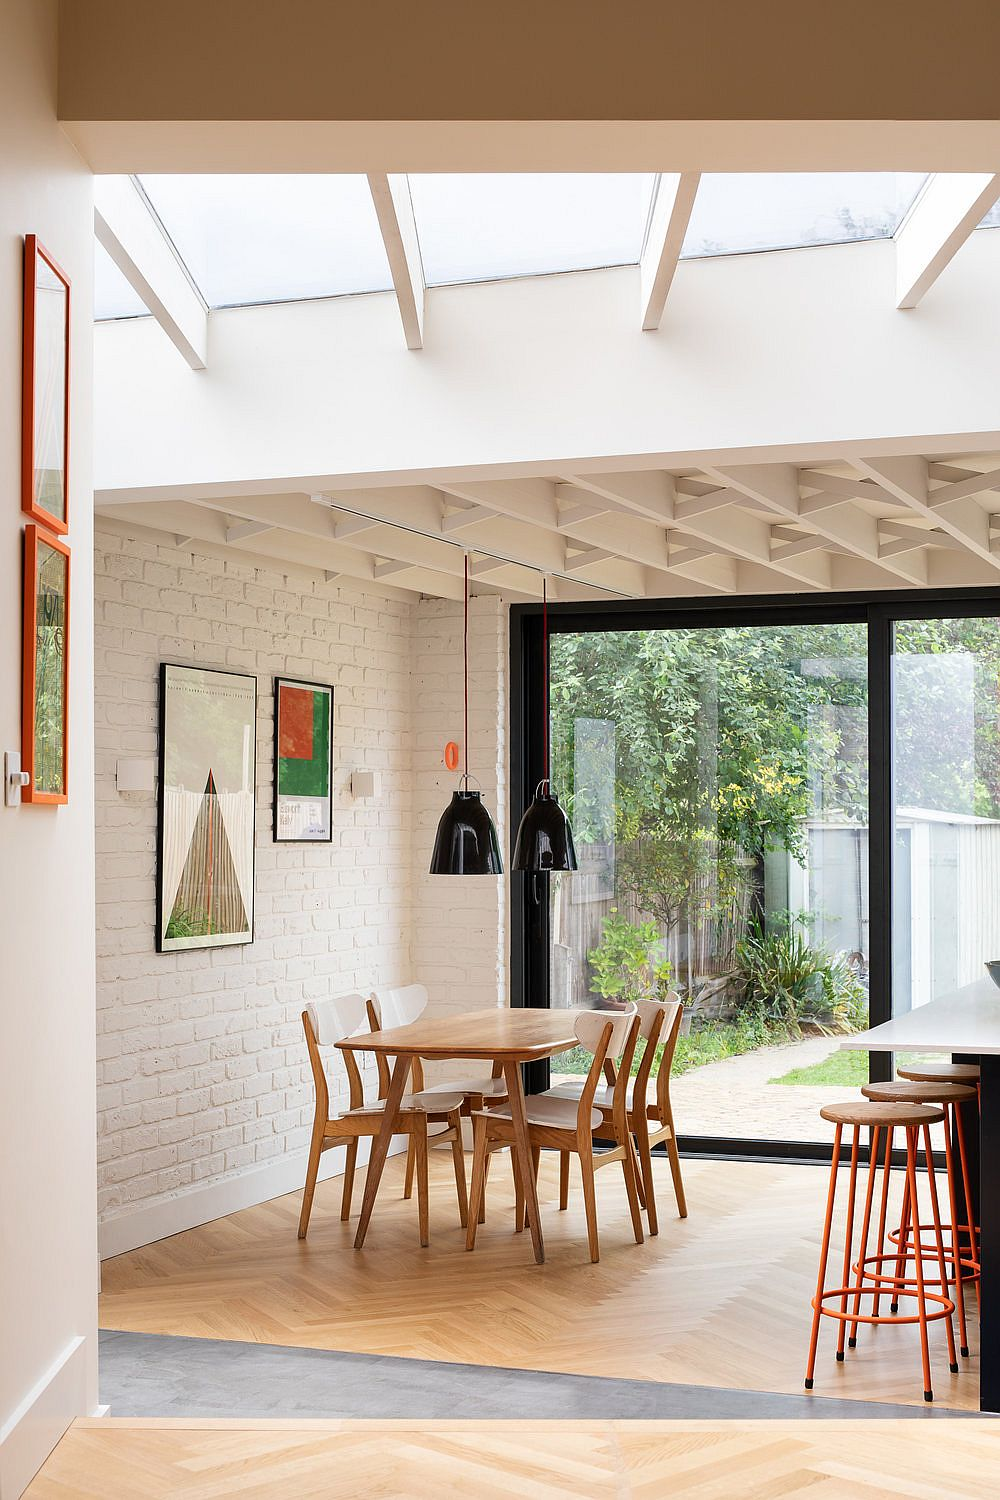 Skylight fills the new dining area, living room and family space with ample natural light